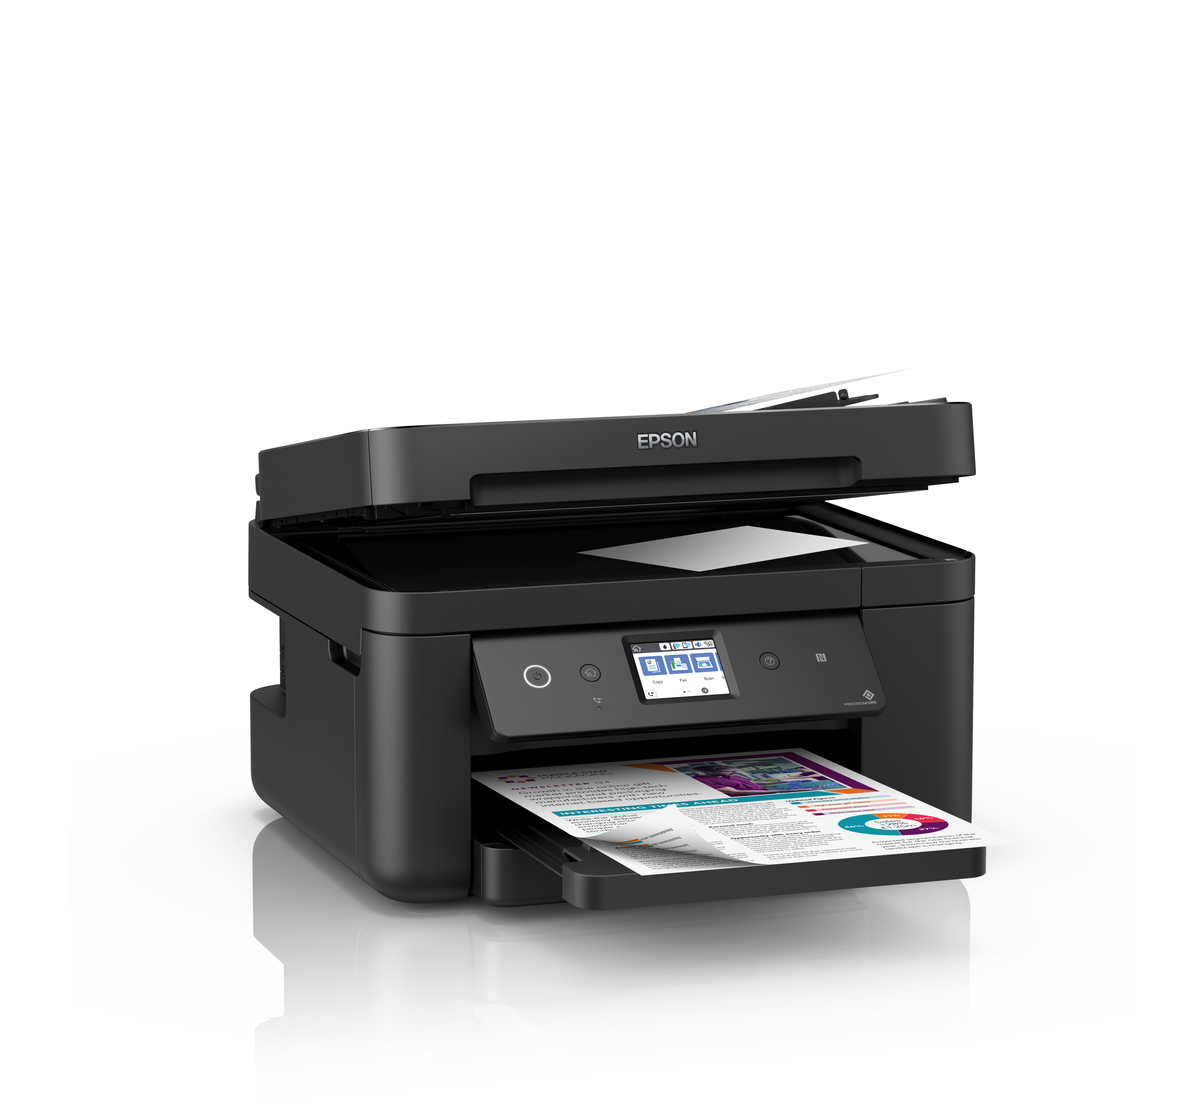 Epson WorkForce WF-2861 Wi-Fi Duplex All-in-One Inkjet Printer